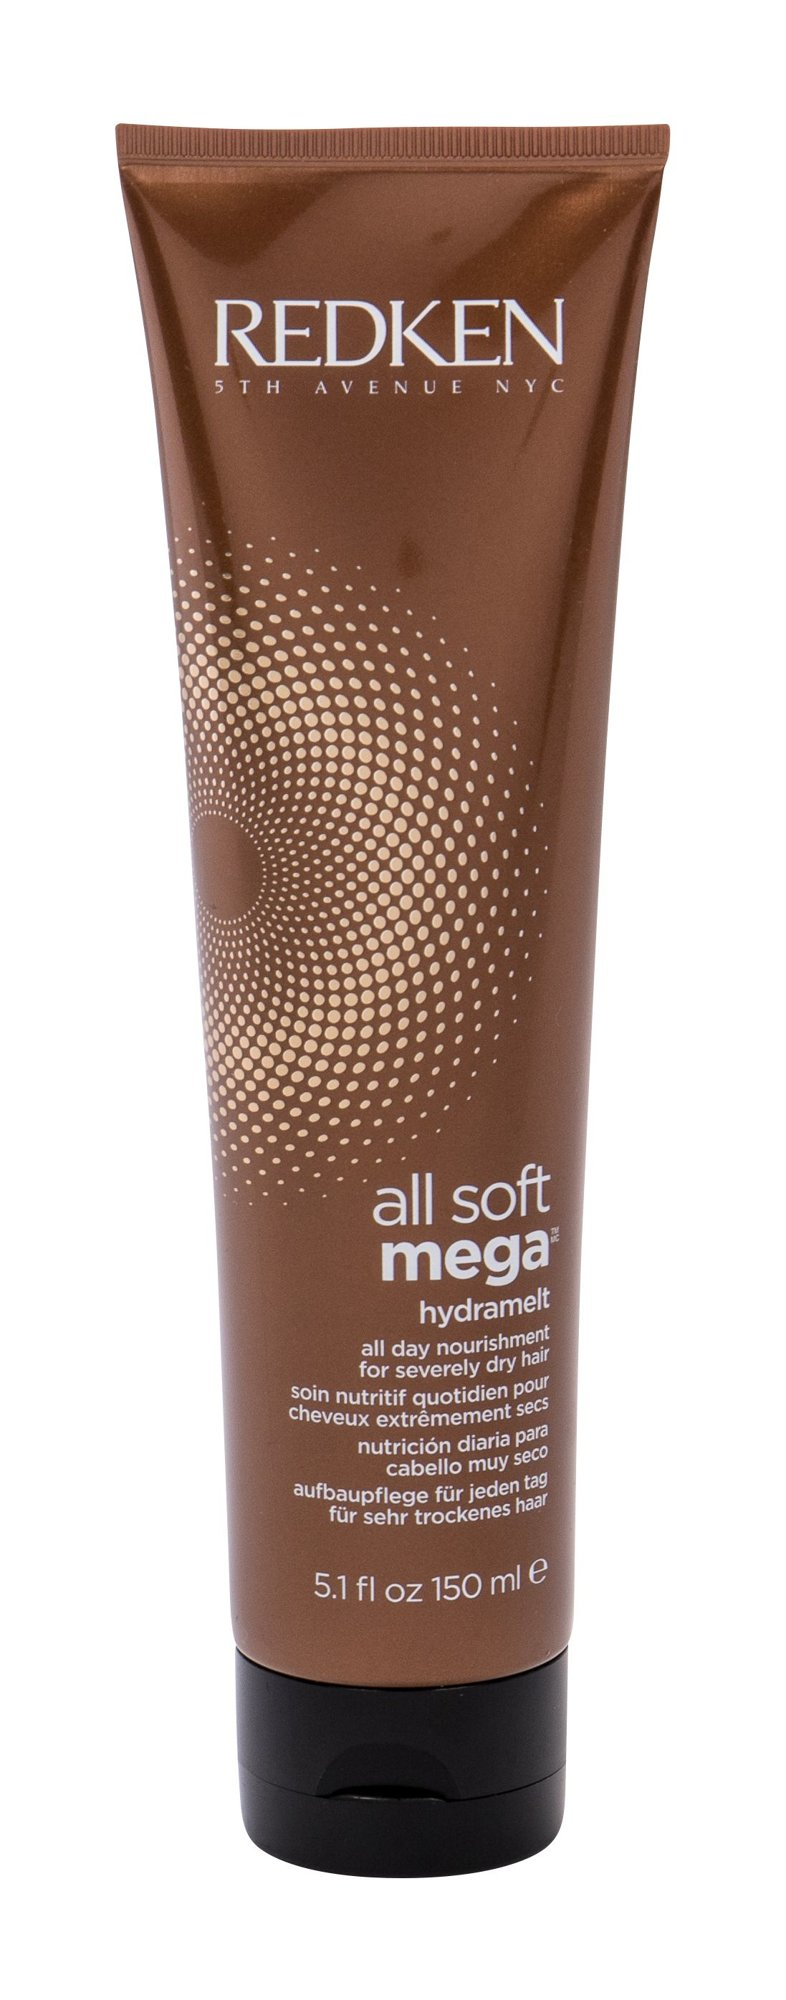 Redken All Soft Leave-in Hair Care 150ml